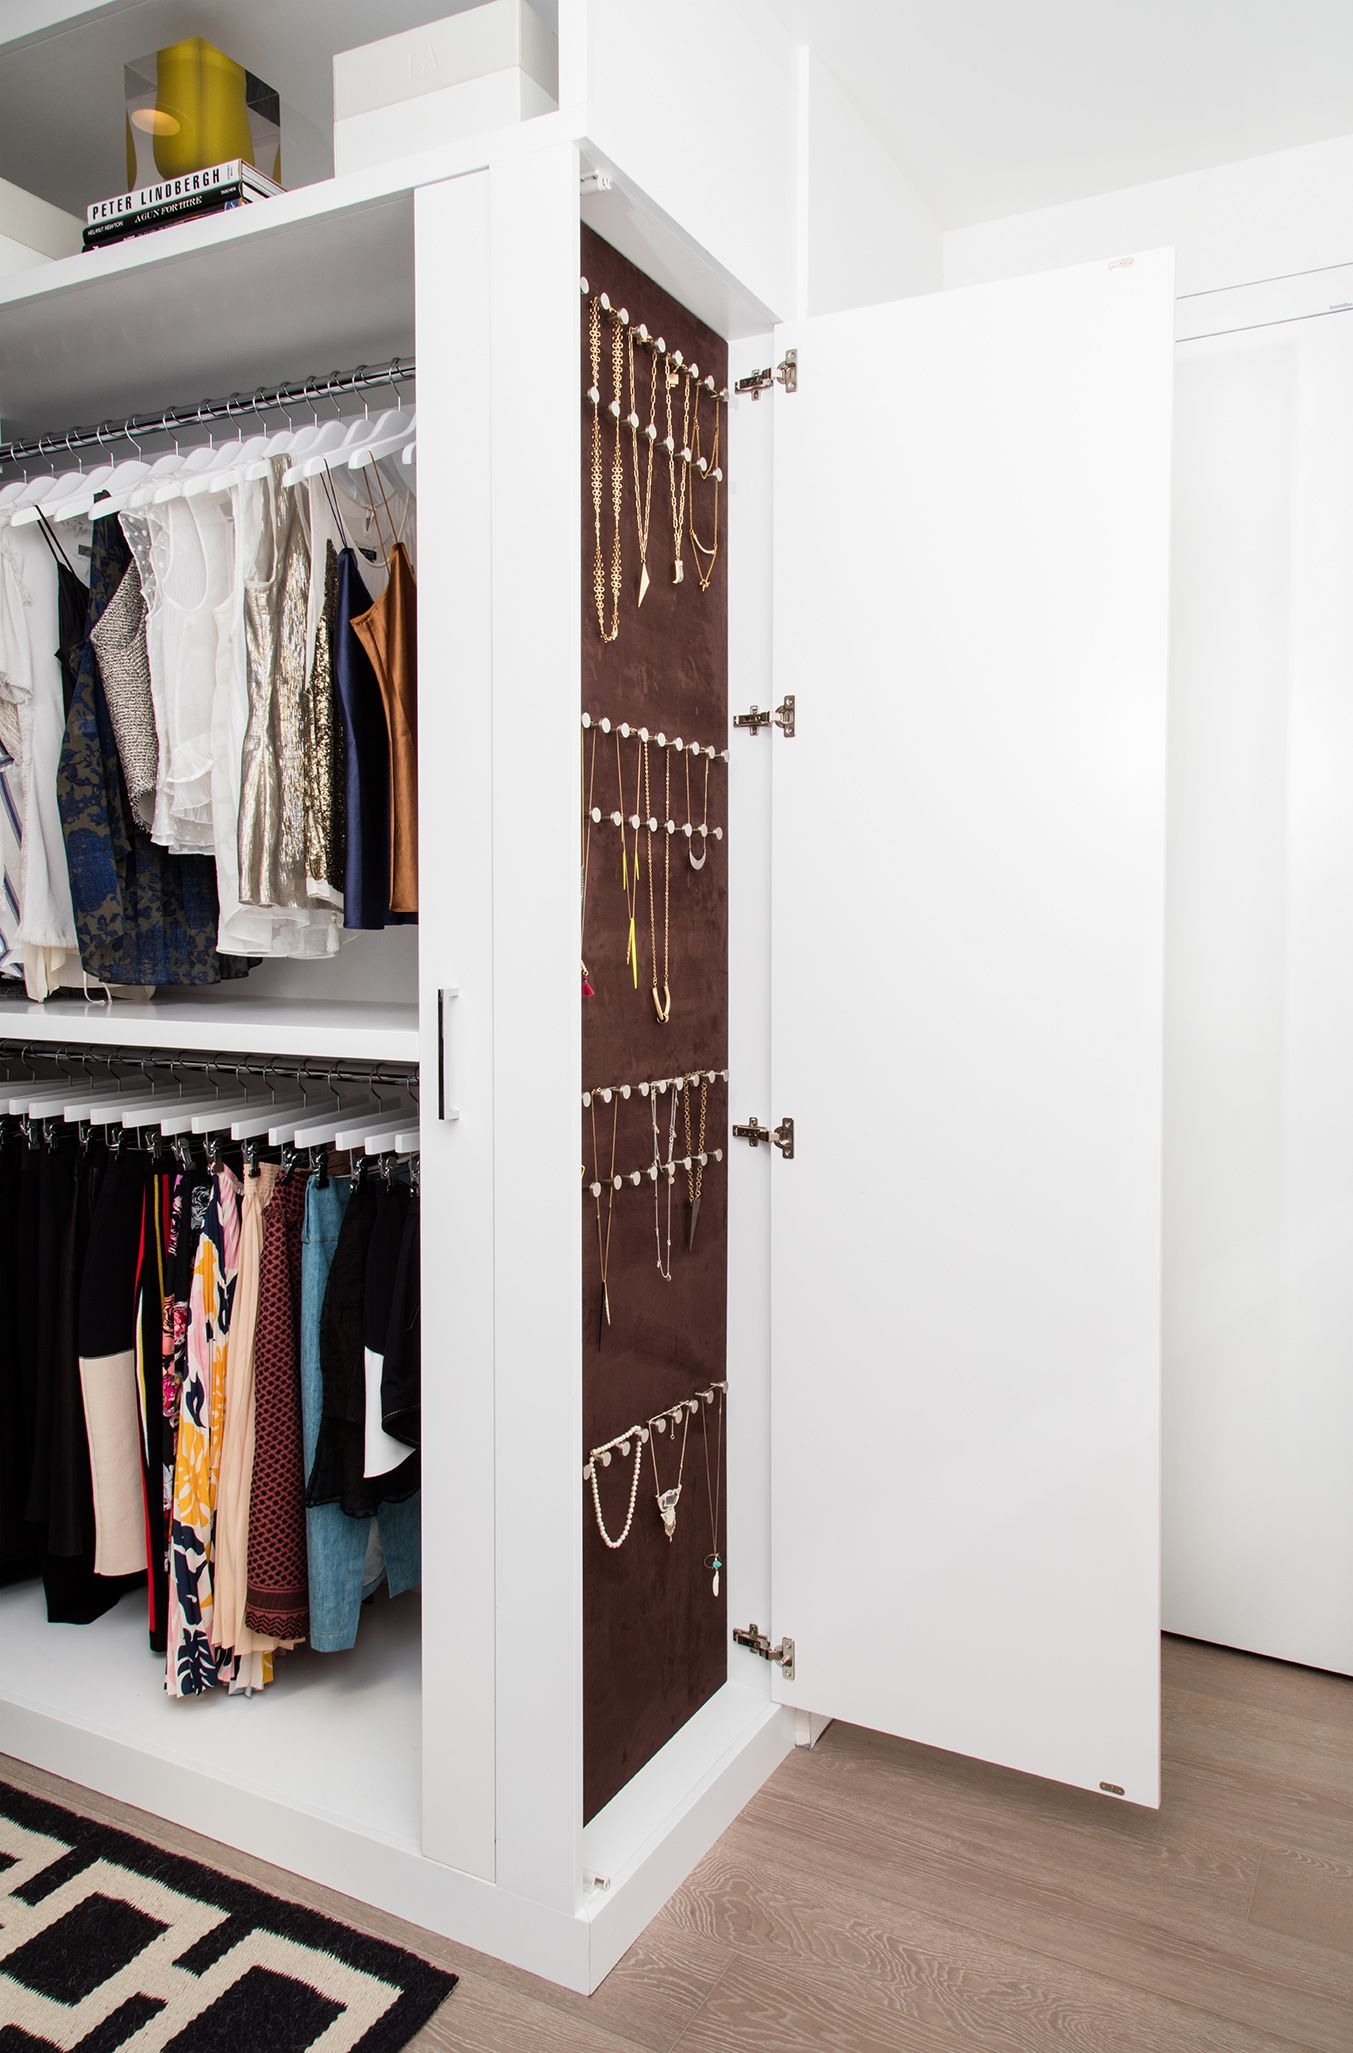 Attrayant Go Inside Tyra Banksu0027s Immaculate Closet (and Get Some Tips From Her  Organizing Pro)   THE PROS AND CONS OF OPEN SHELVING From InStyle.com